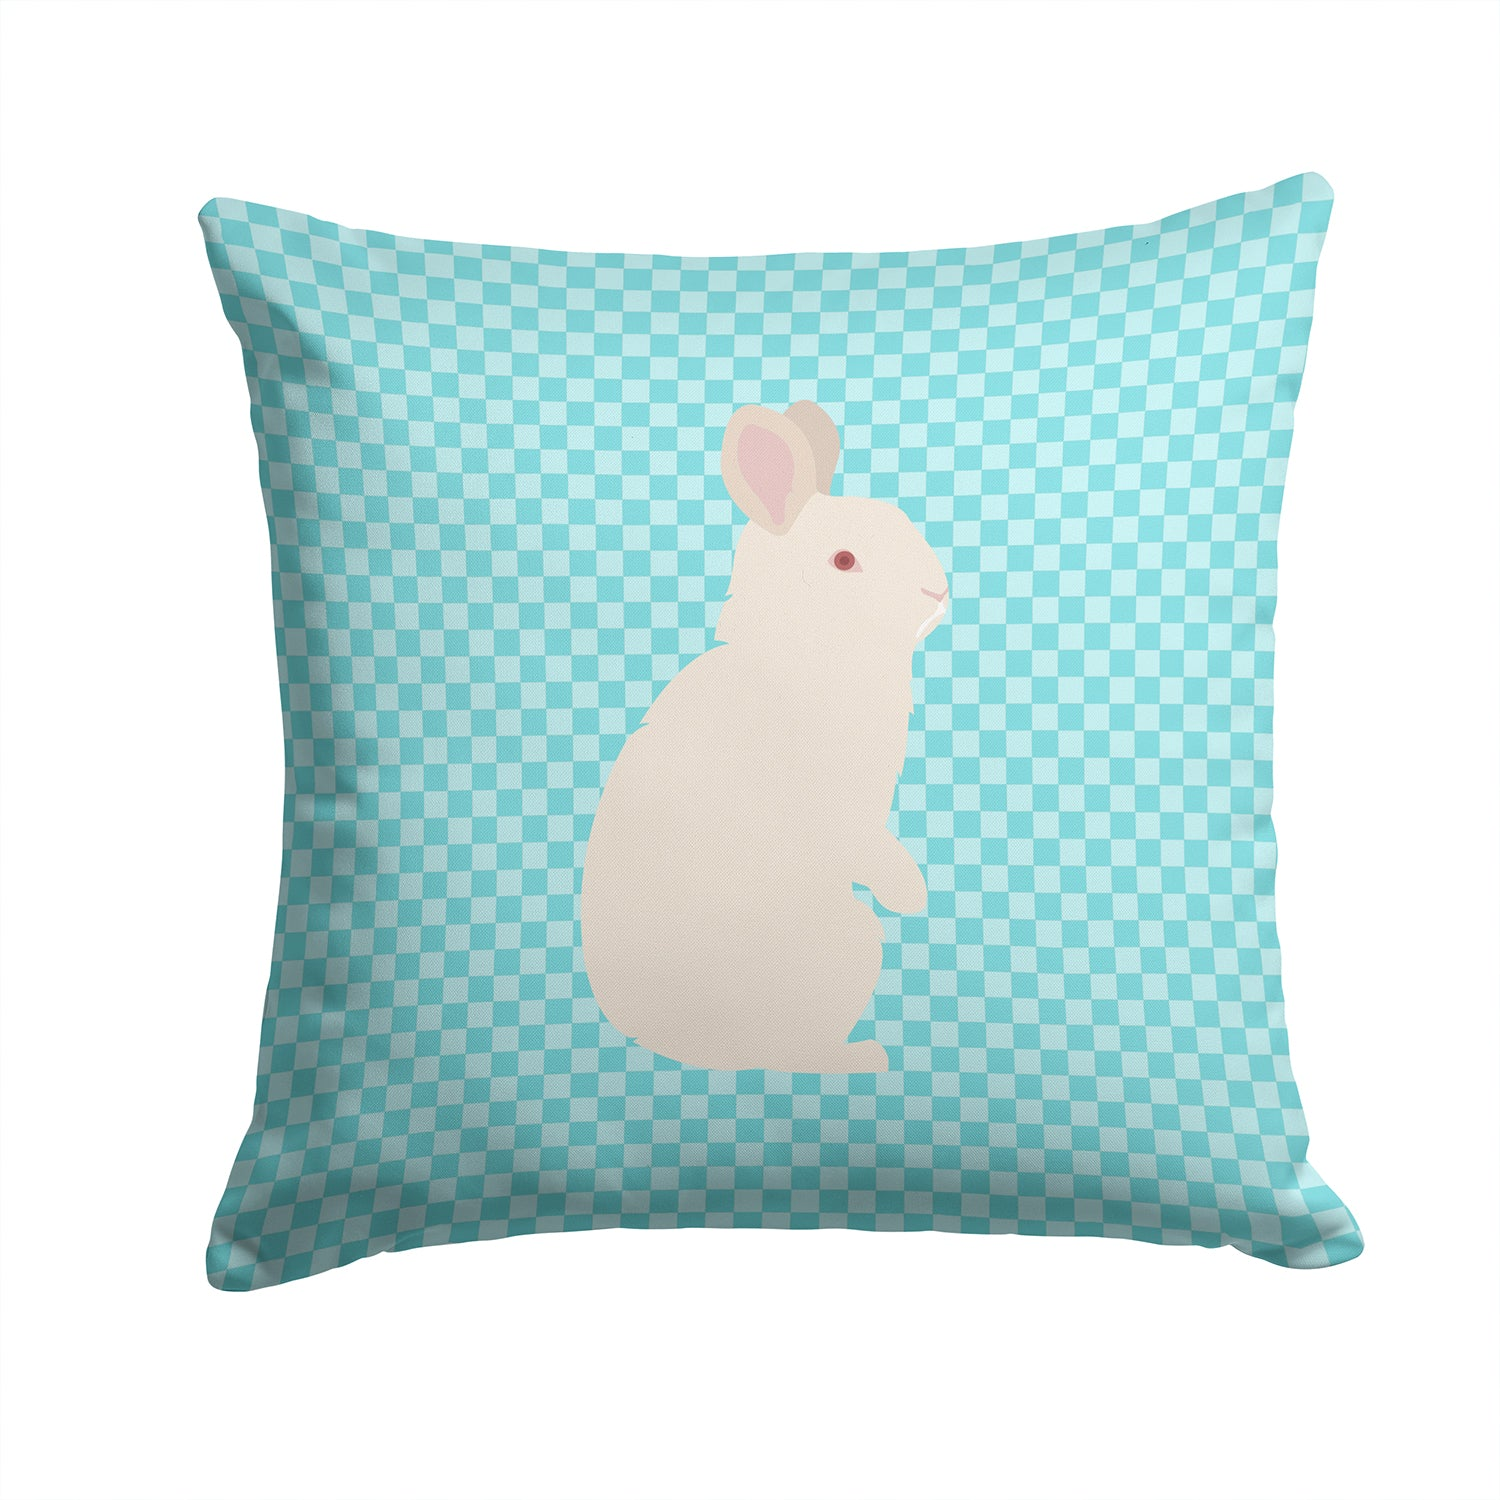 New Zealand White Rabbit Blue Check Fabric Decorative Pillow BB8139PW1414 by Caroline's Treasures